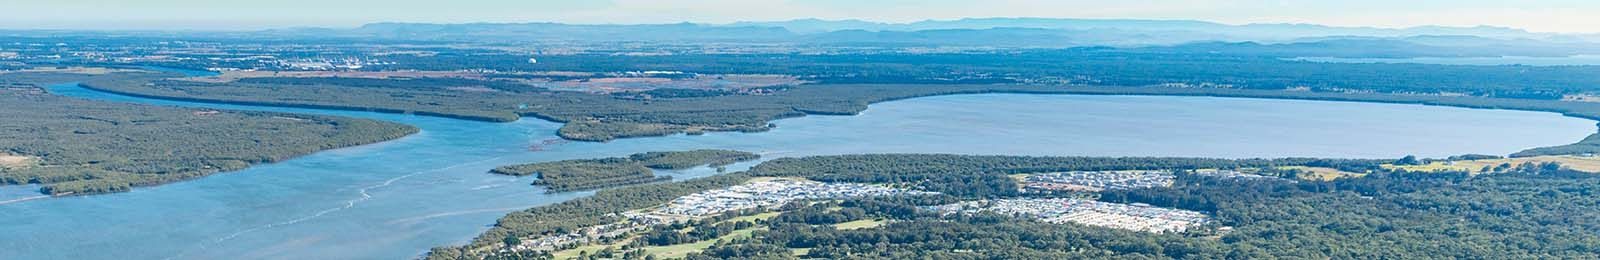 Image of Port Stephens foreshore